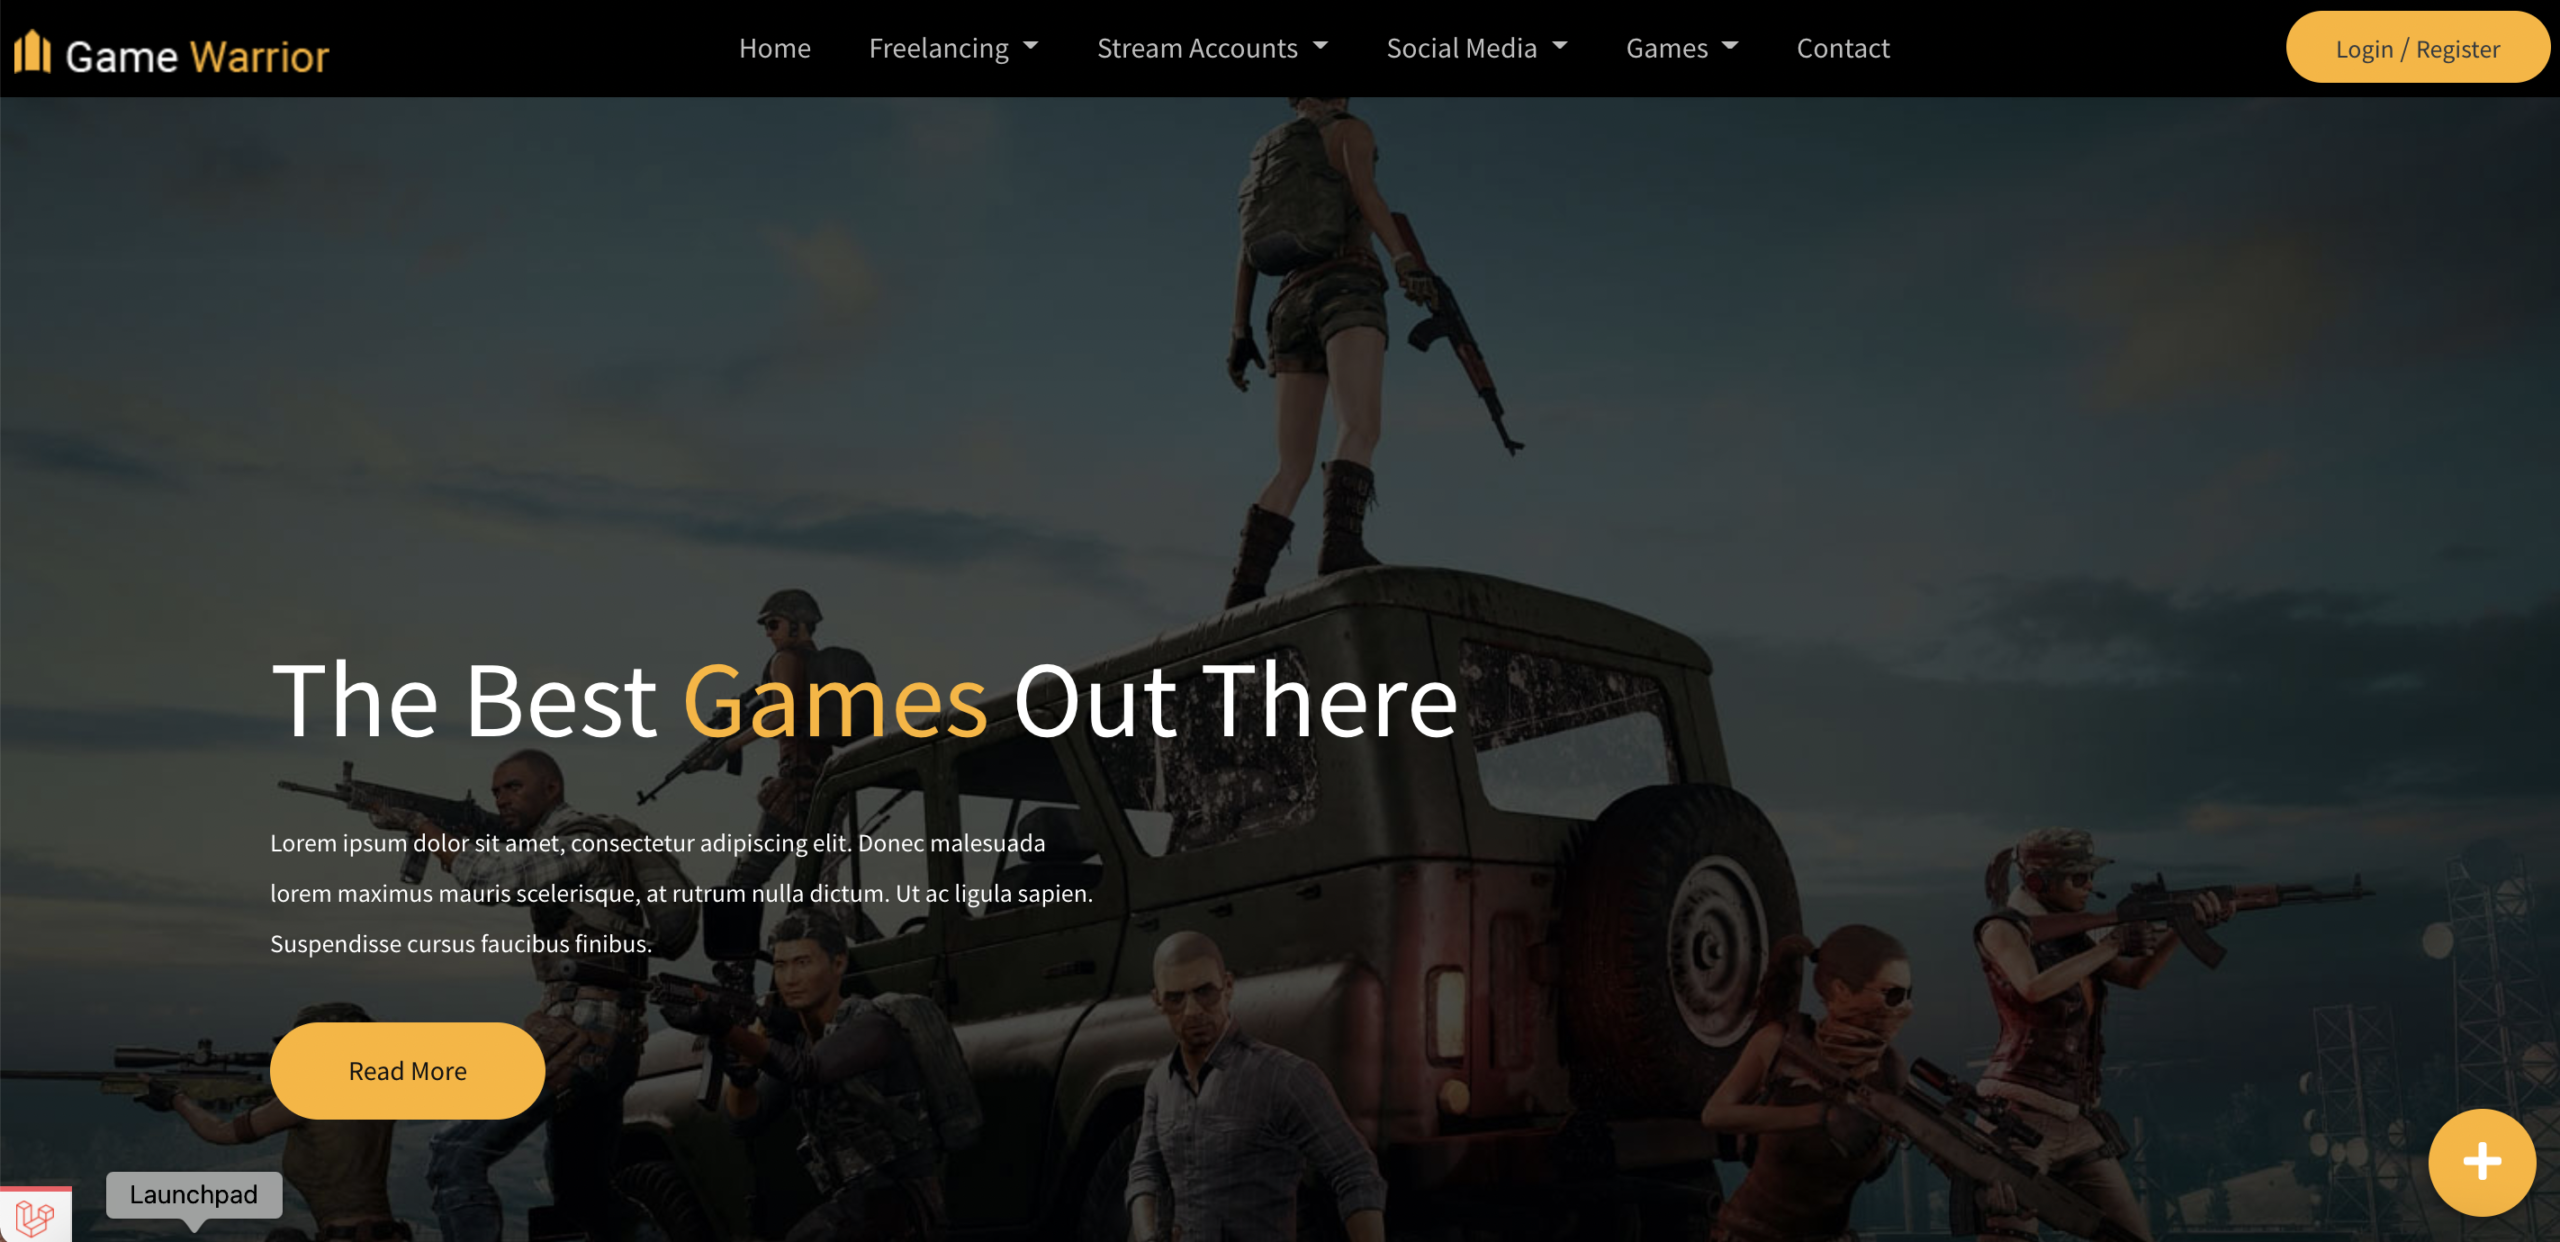 Game Warrior – Games account buying and selling- Laravel Based WebApp